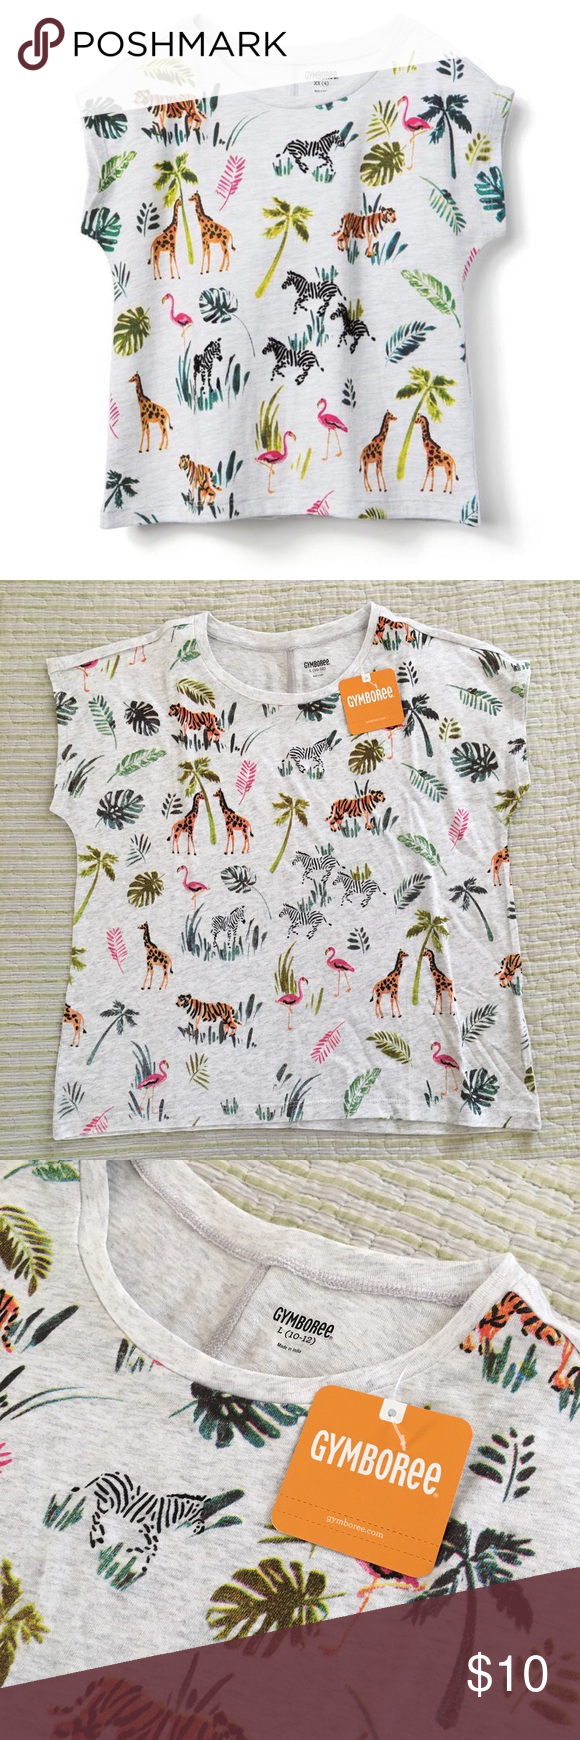 9905de521f6d Gymboree Safari Sketch Short Sleeve Tee Size 10-12 New with tags I ACCEPT  OFFERS